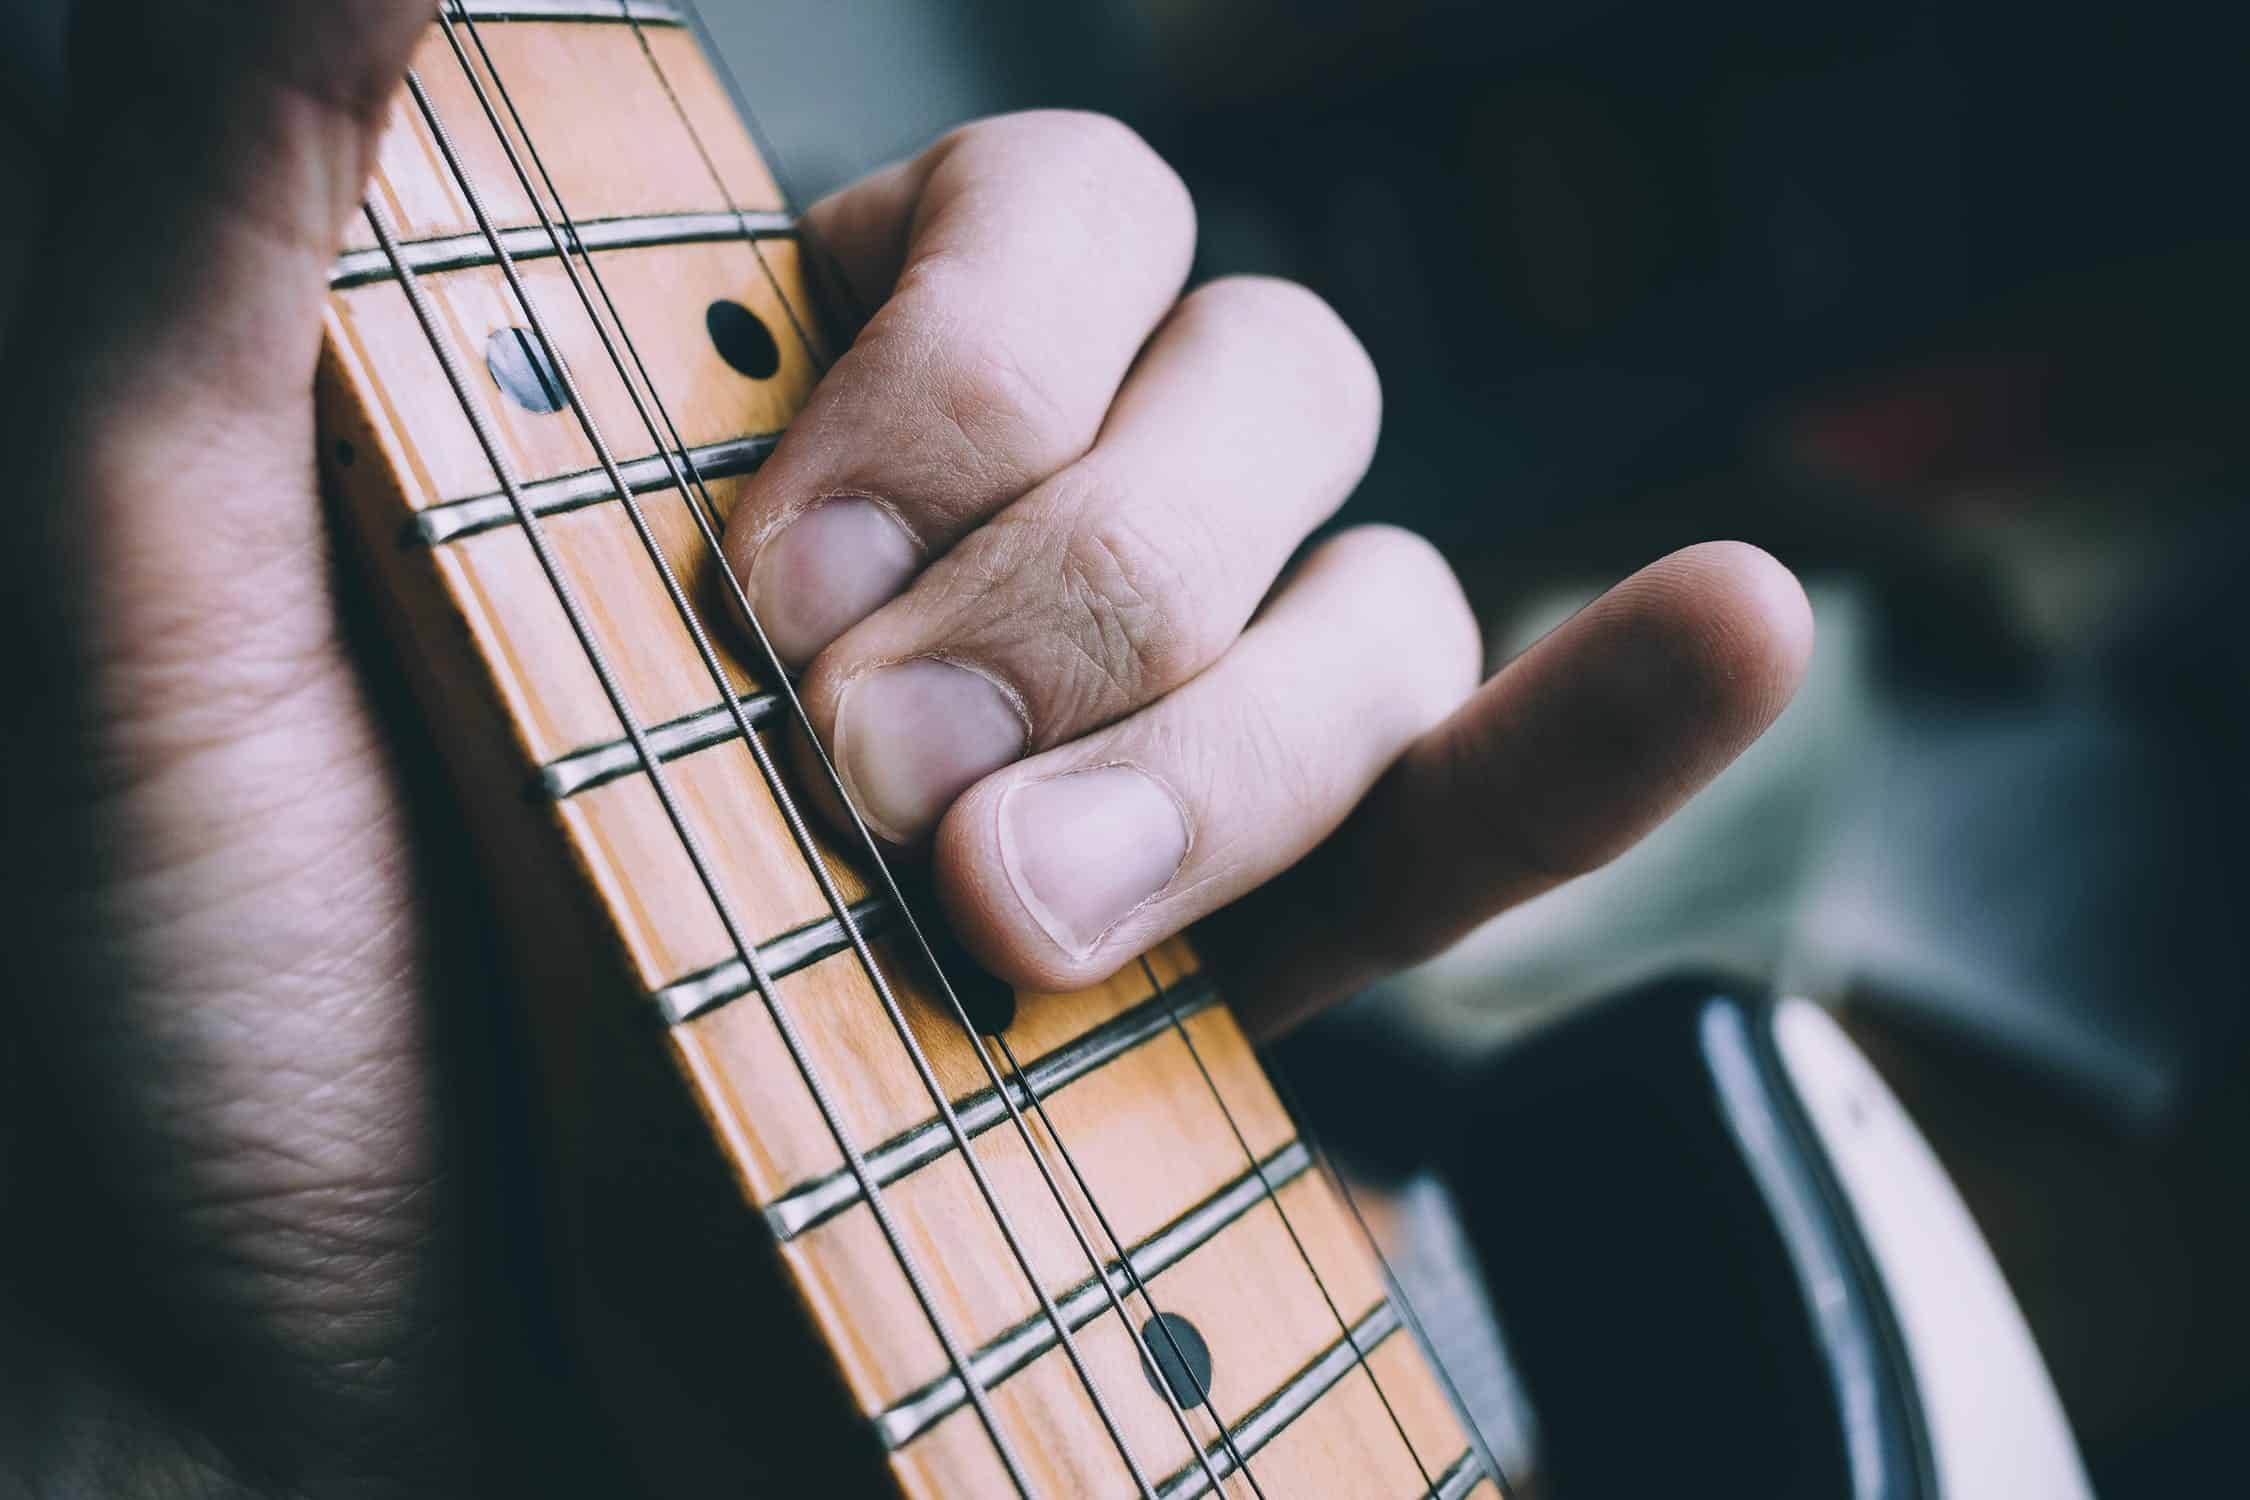 Basic Guitar Chords with their Finger Placement